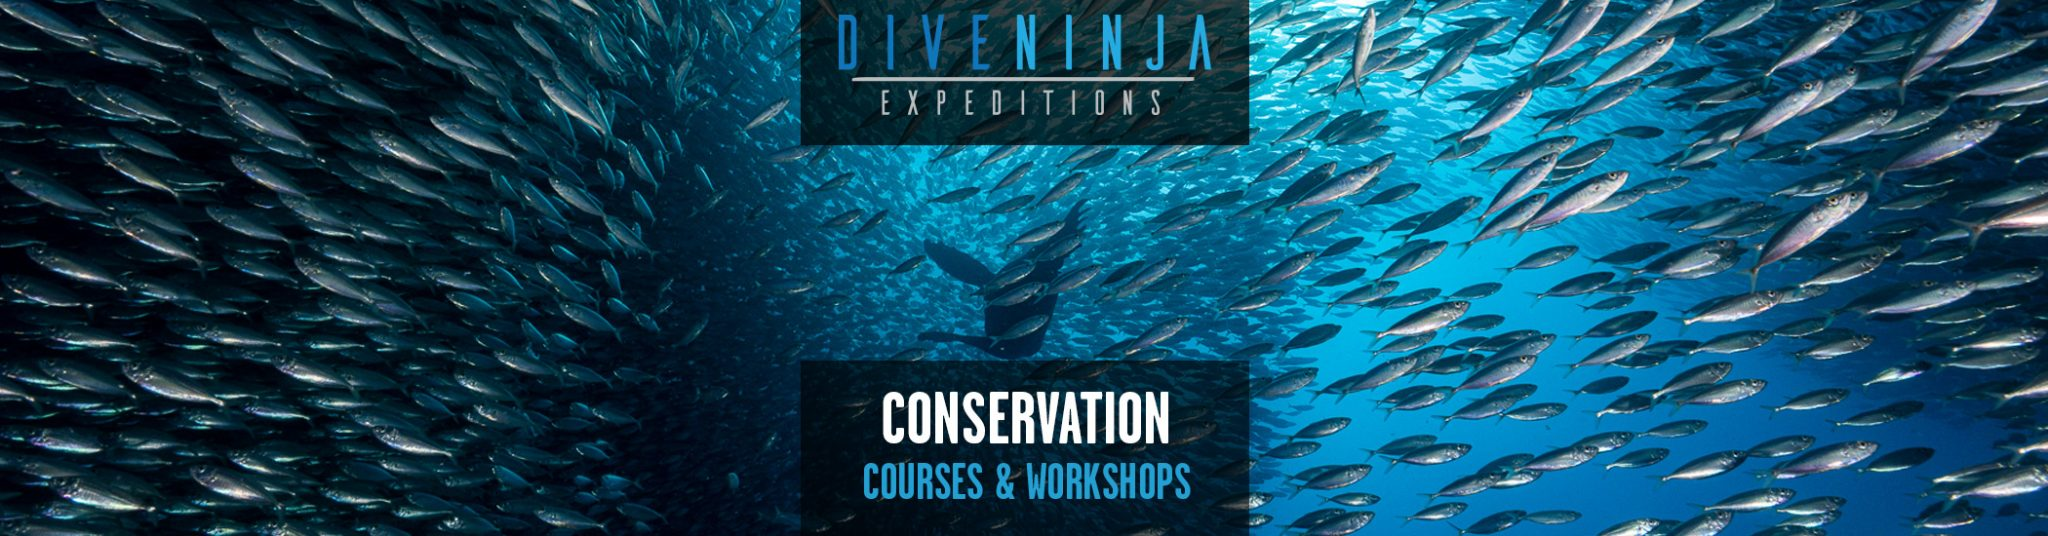 Conservation Courses and Workshops in Mexico